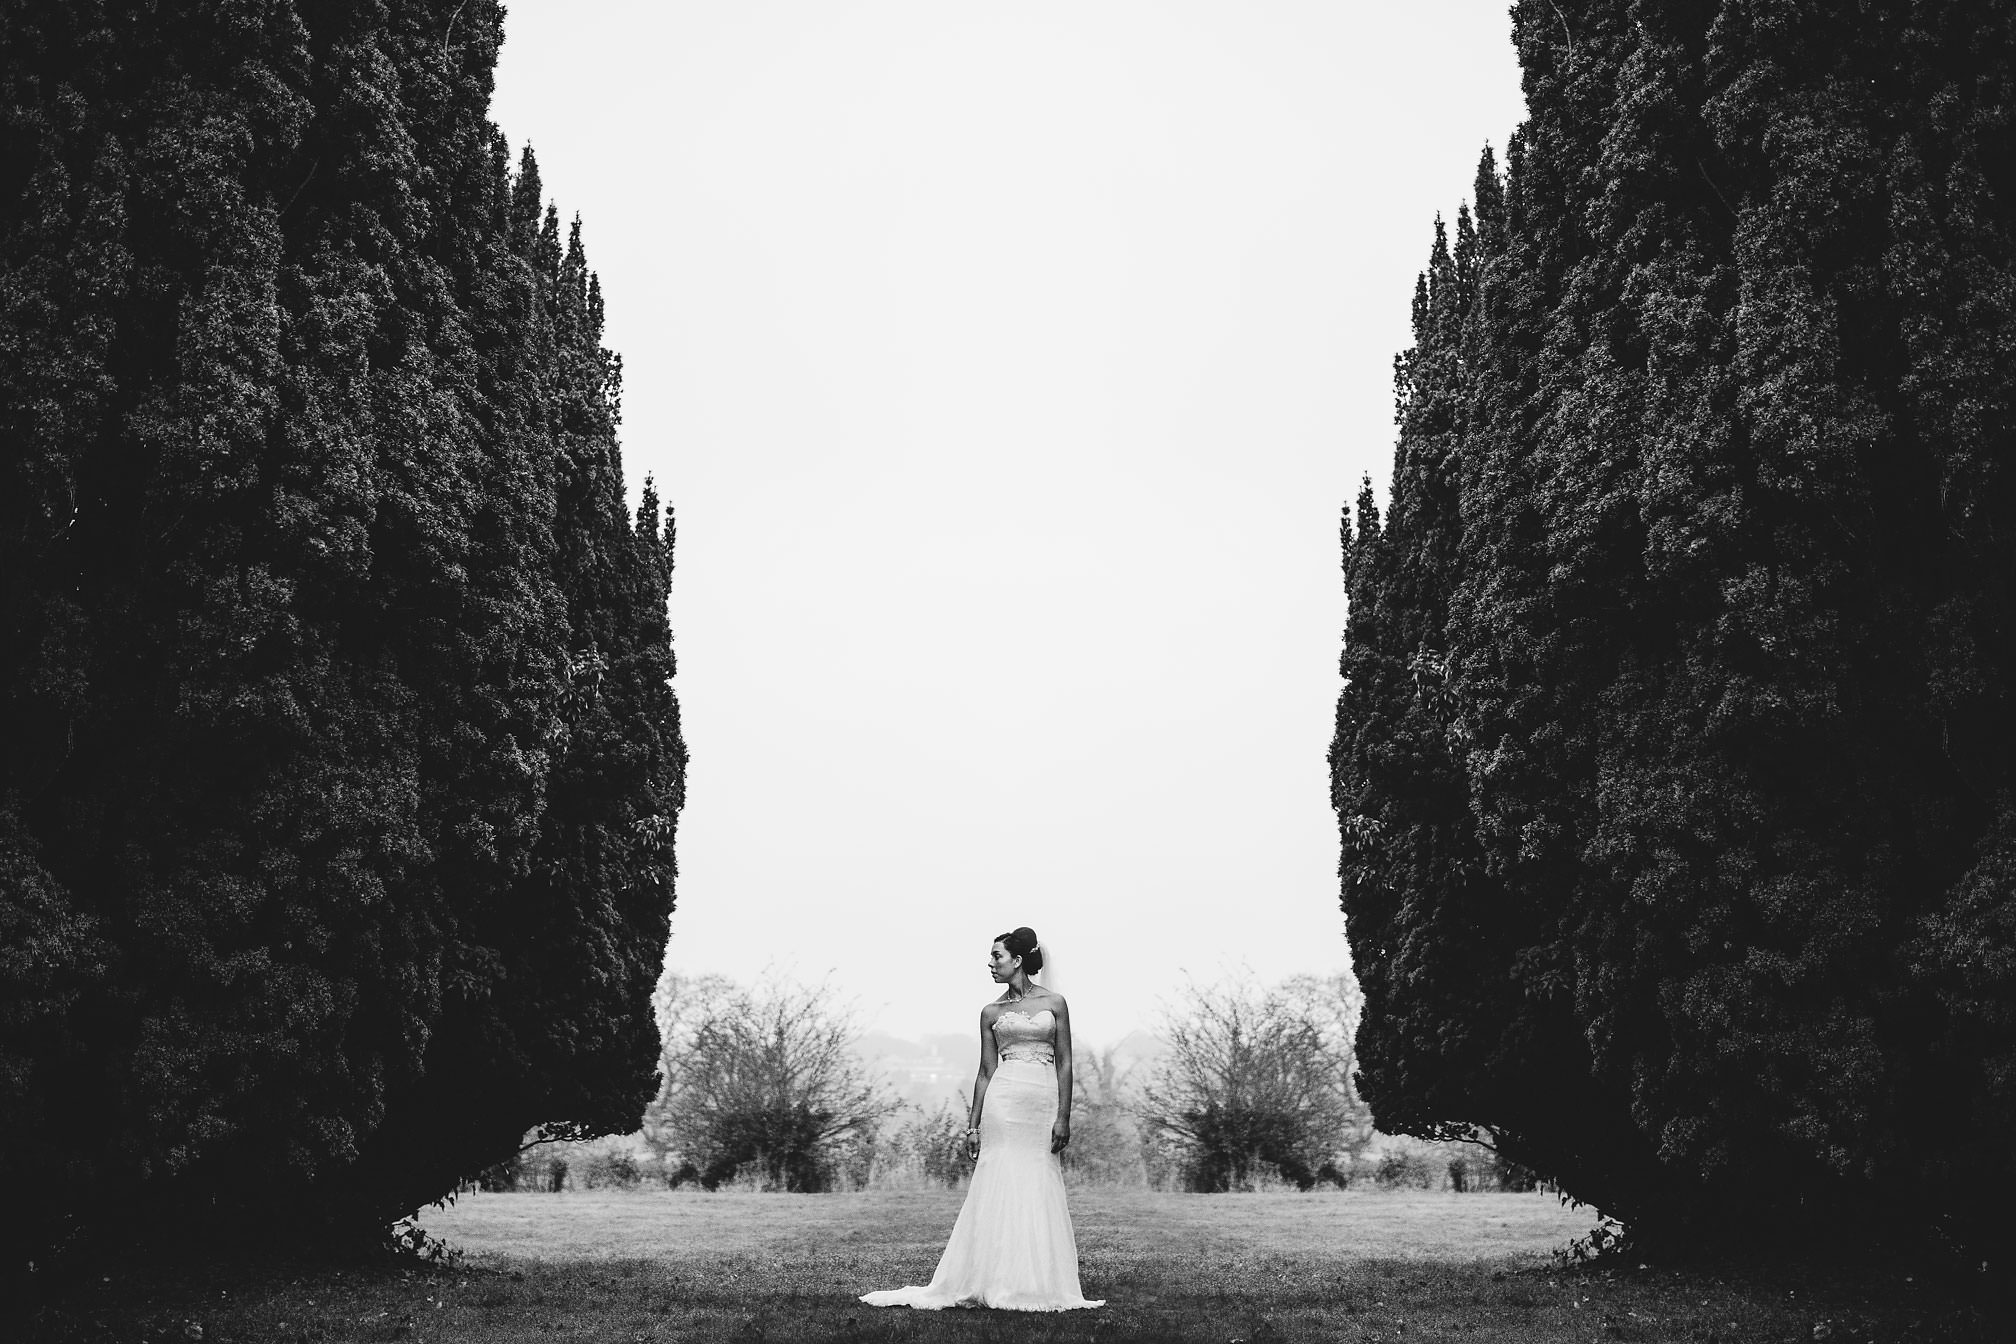 MyWed Editors Choice - Barton Hall, Northants, Bridal Portrait between the trees